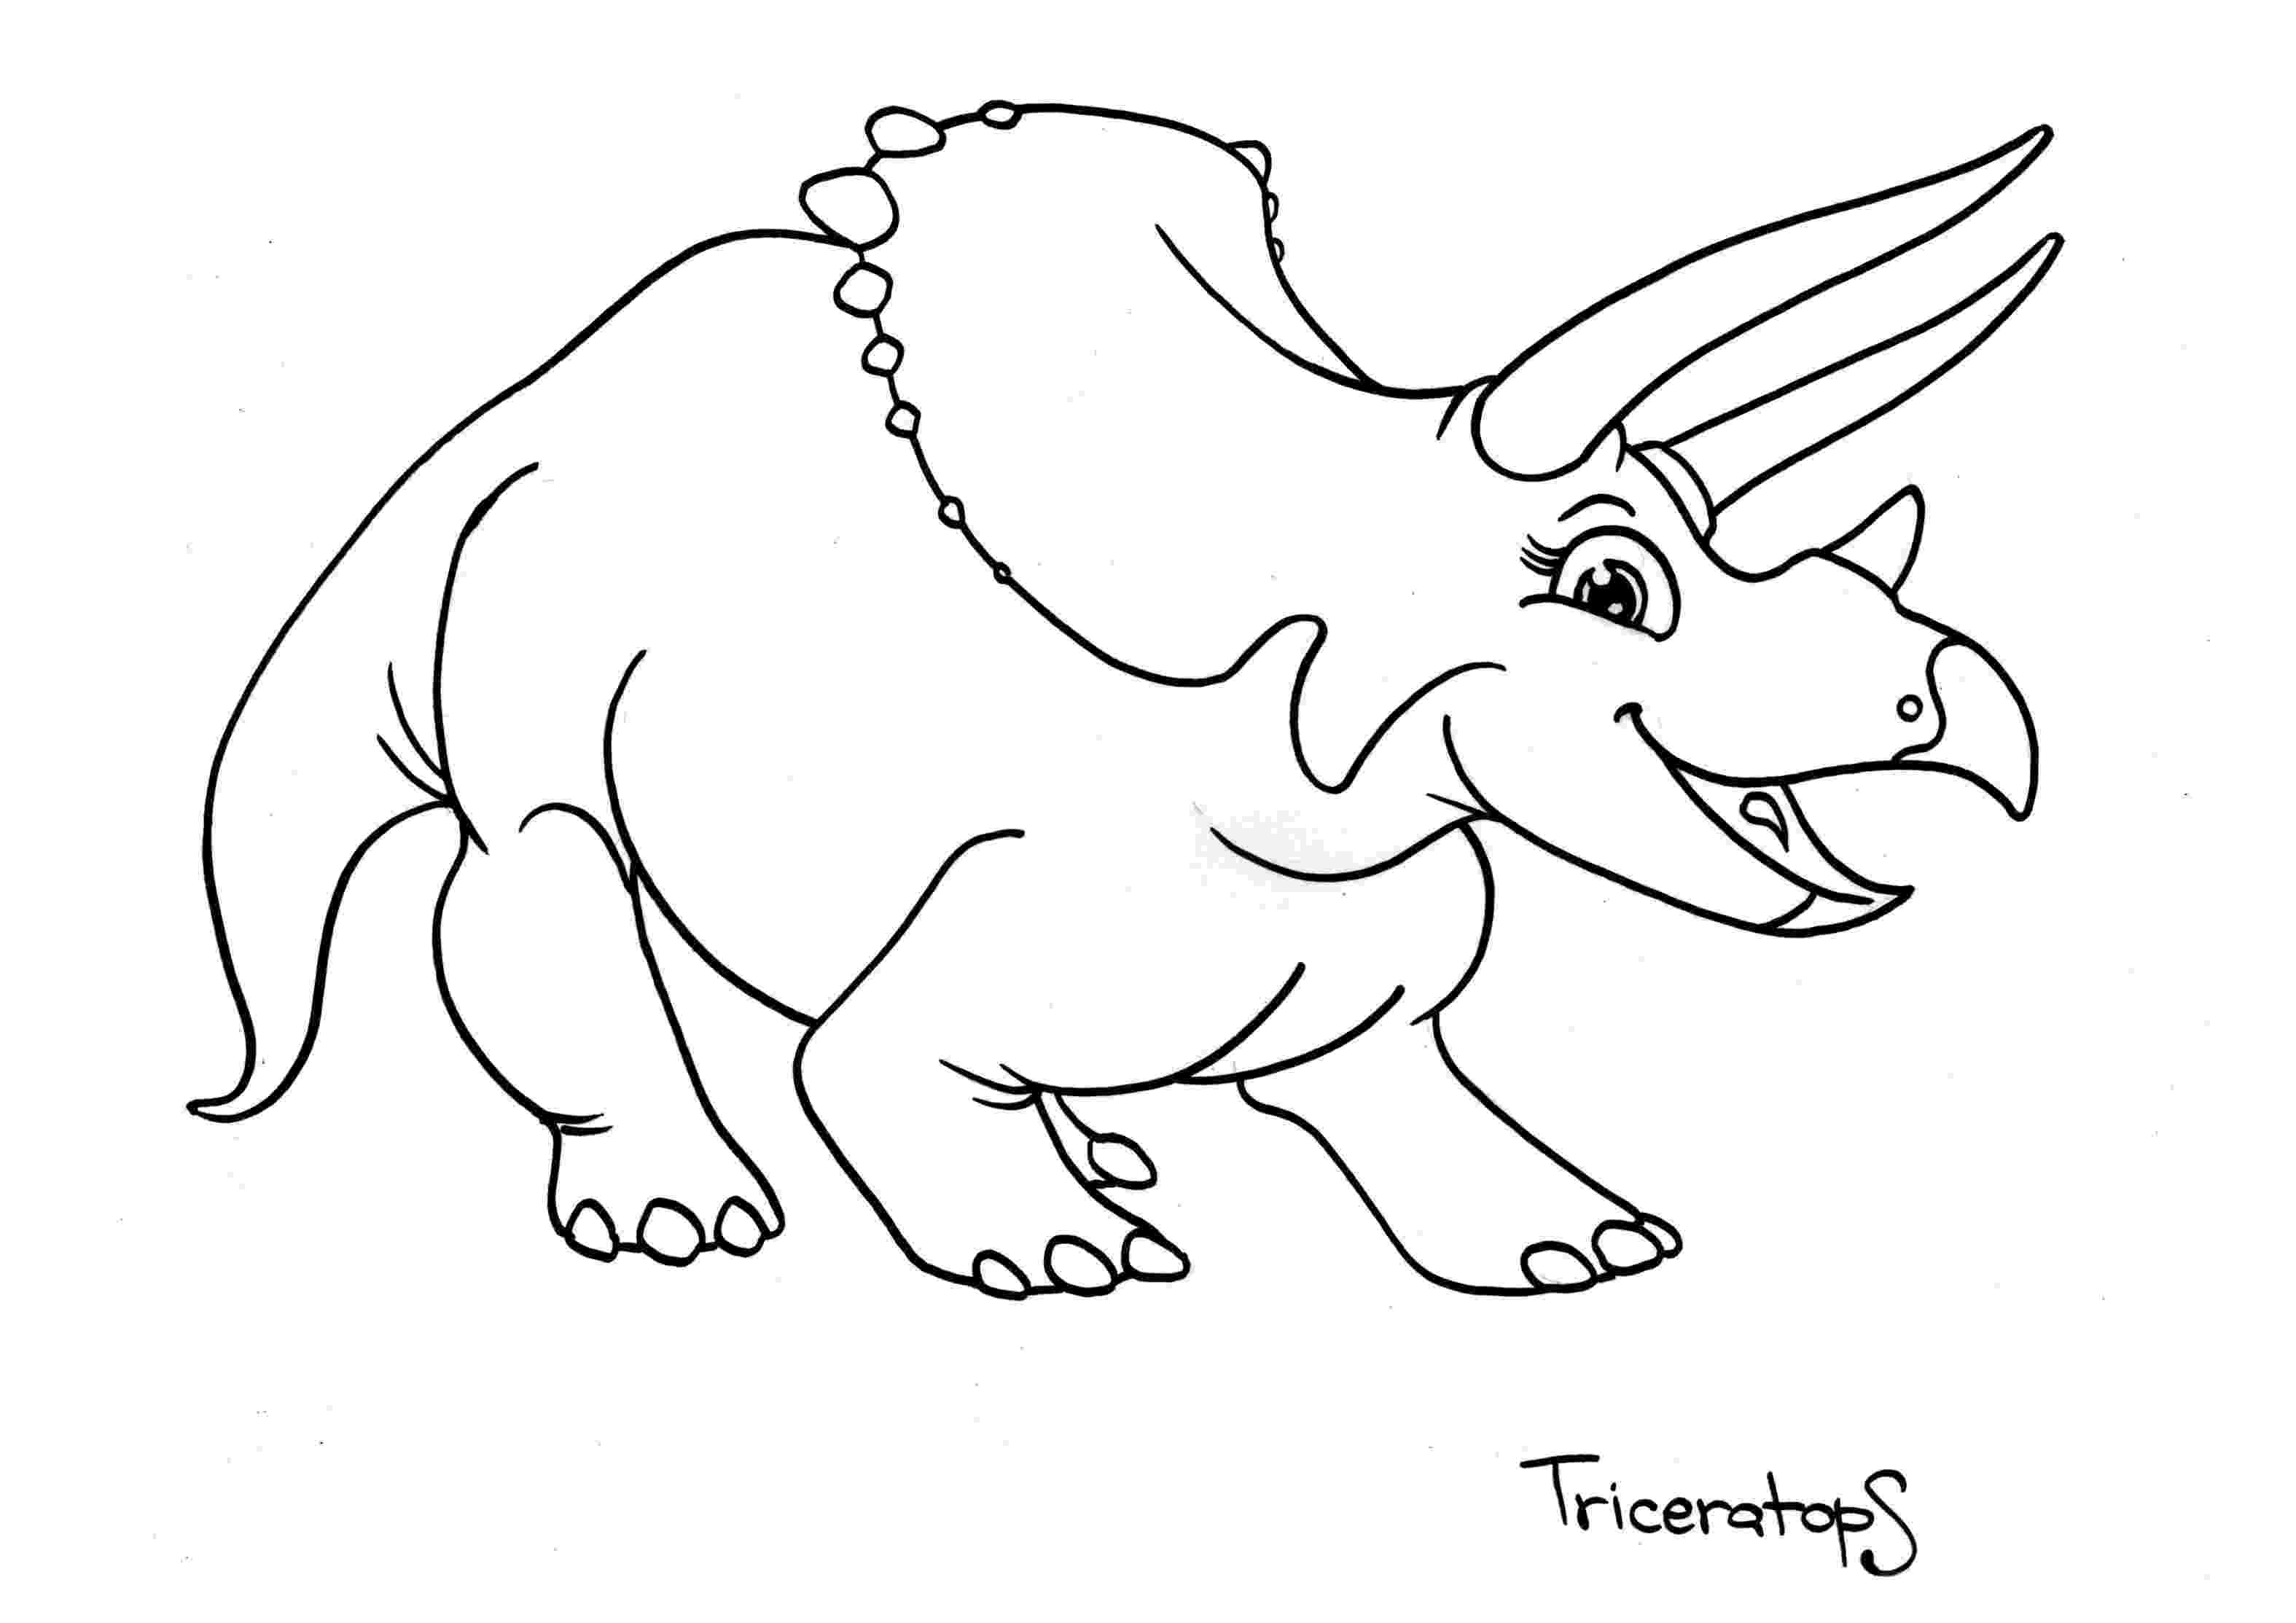 dinosaur colouring pictures to print coloring pages images dinosaurs pictures and facts page to dinosaur print pictures colouring